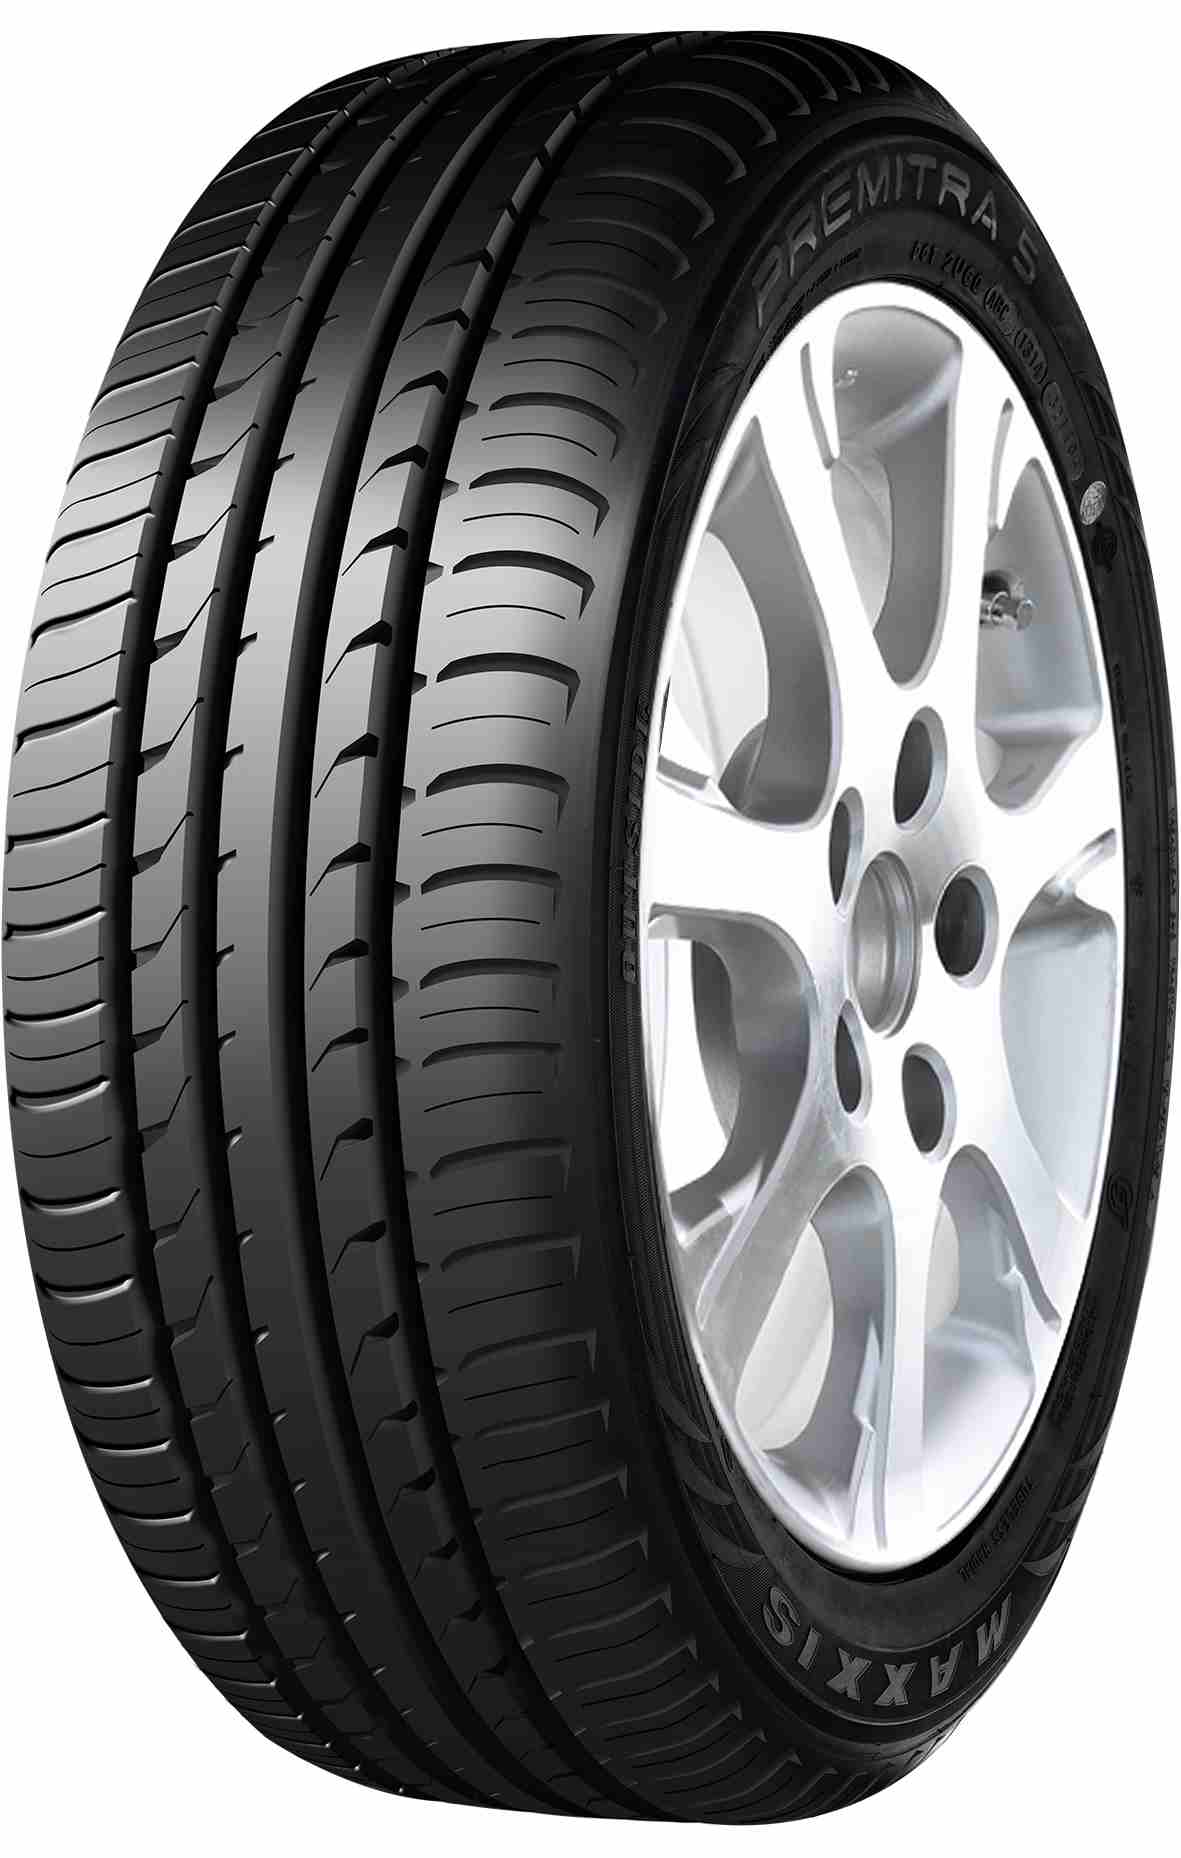 Summer Tyre MAXXIS MAXXIS HP5 215/60R17 96 H